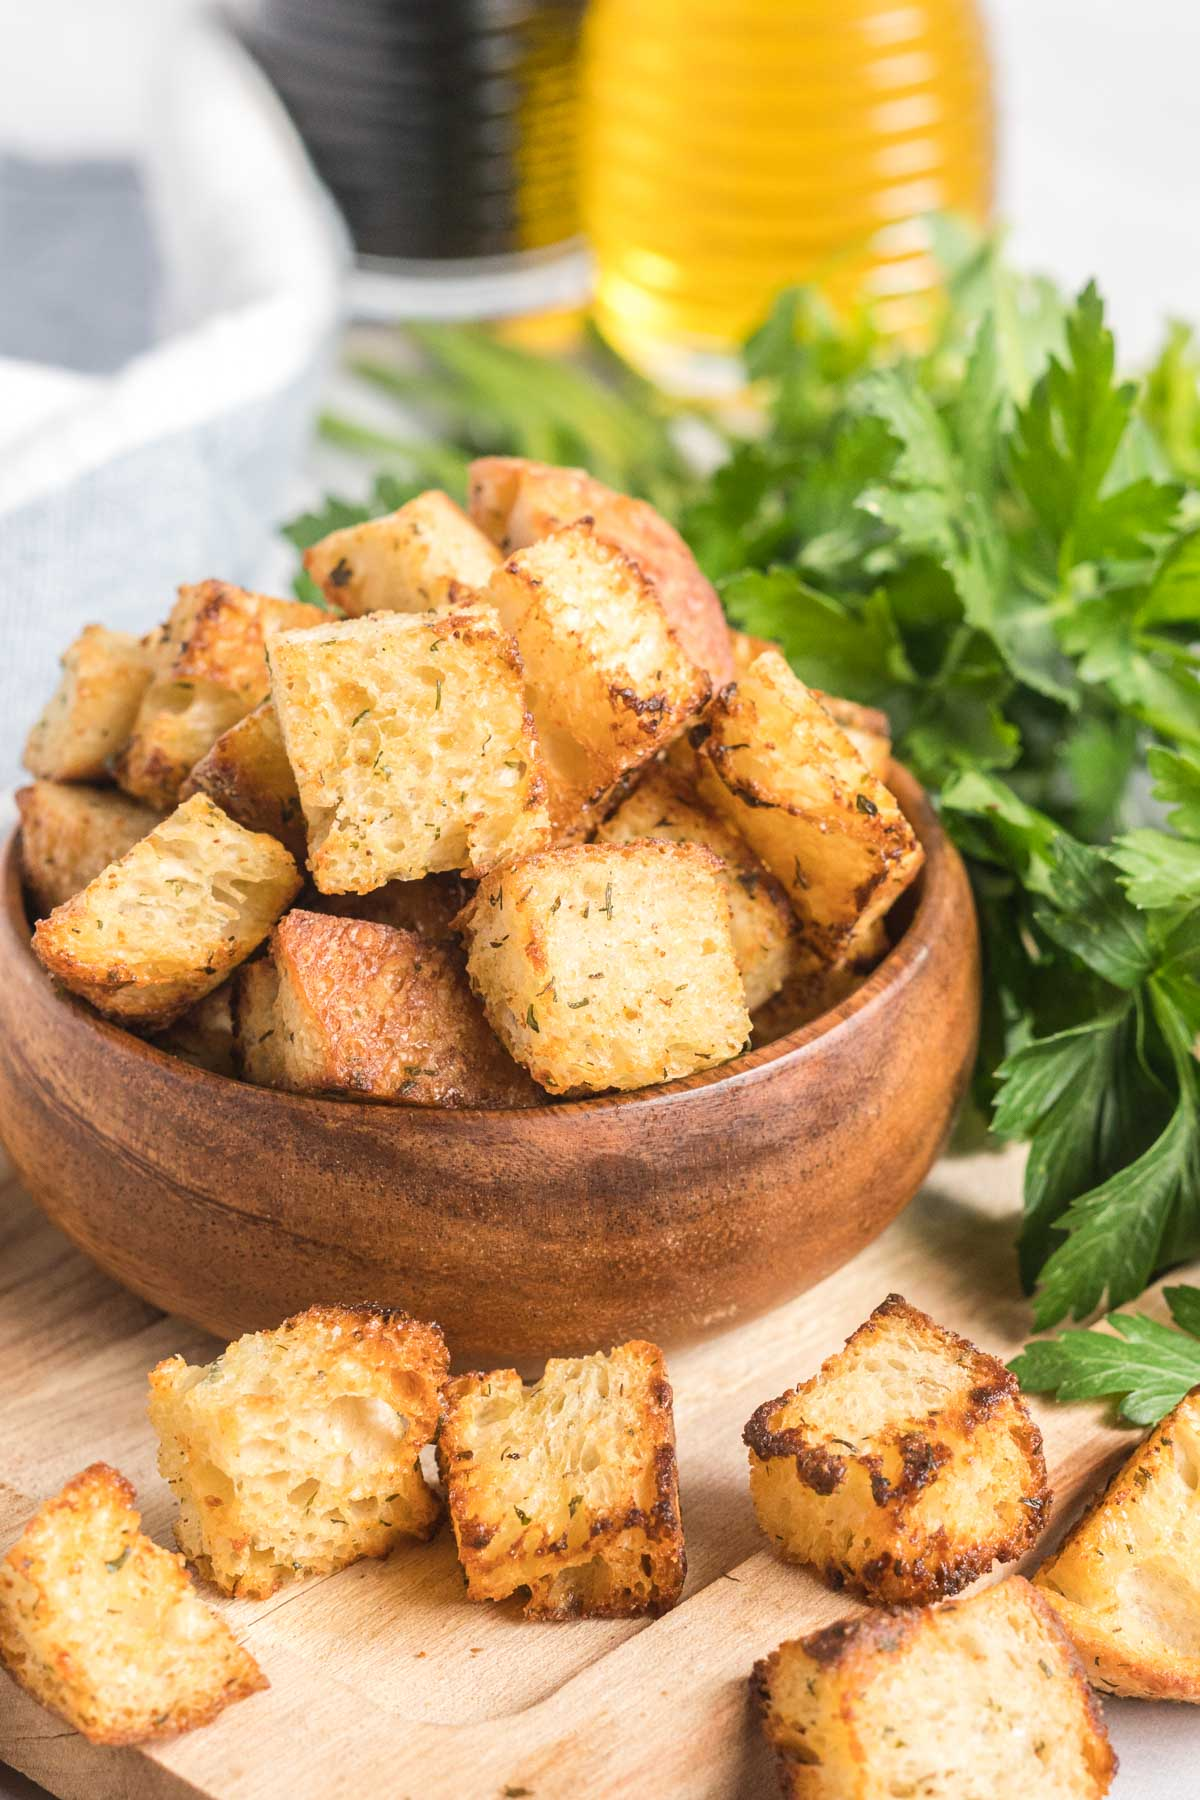 Croutons in a small wooden bowl with a bunch of greens and an oil and vinegar bottle.